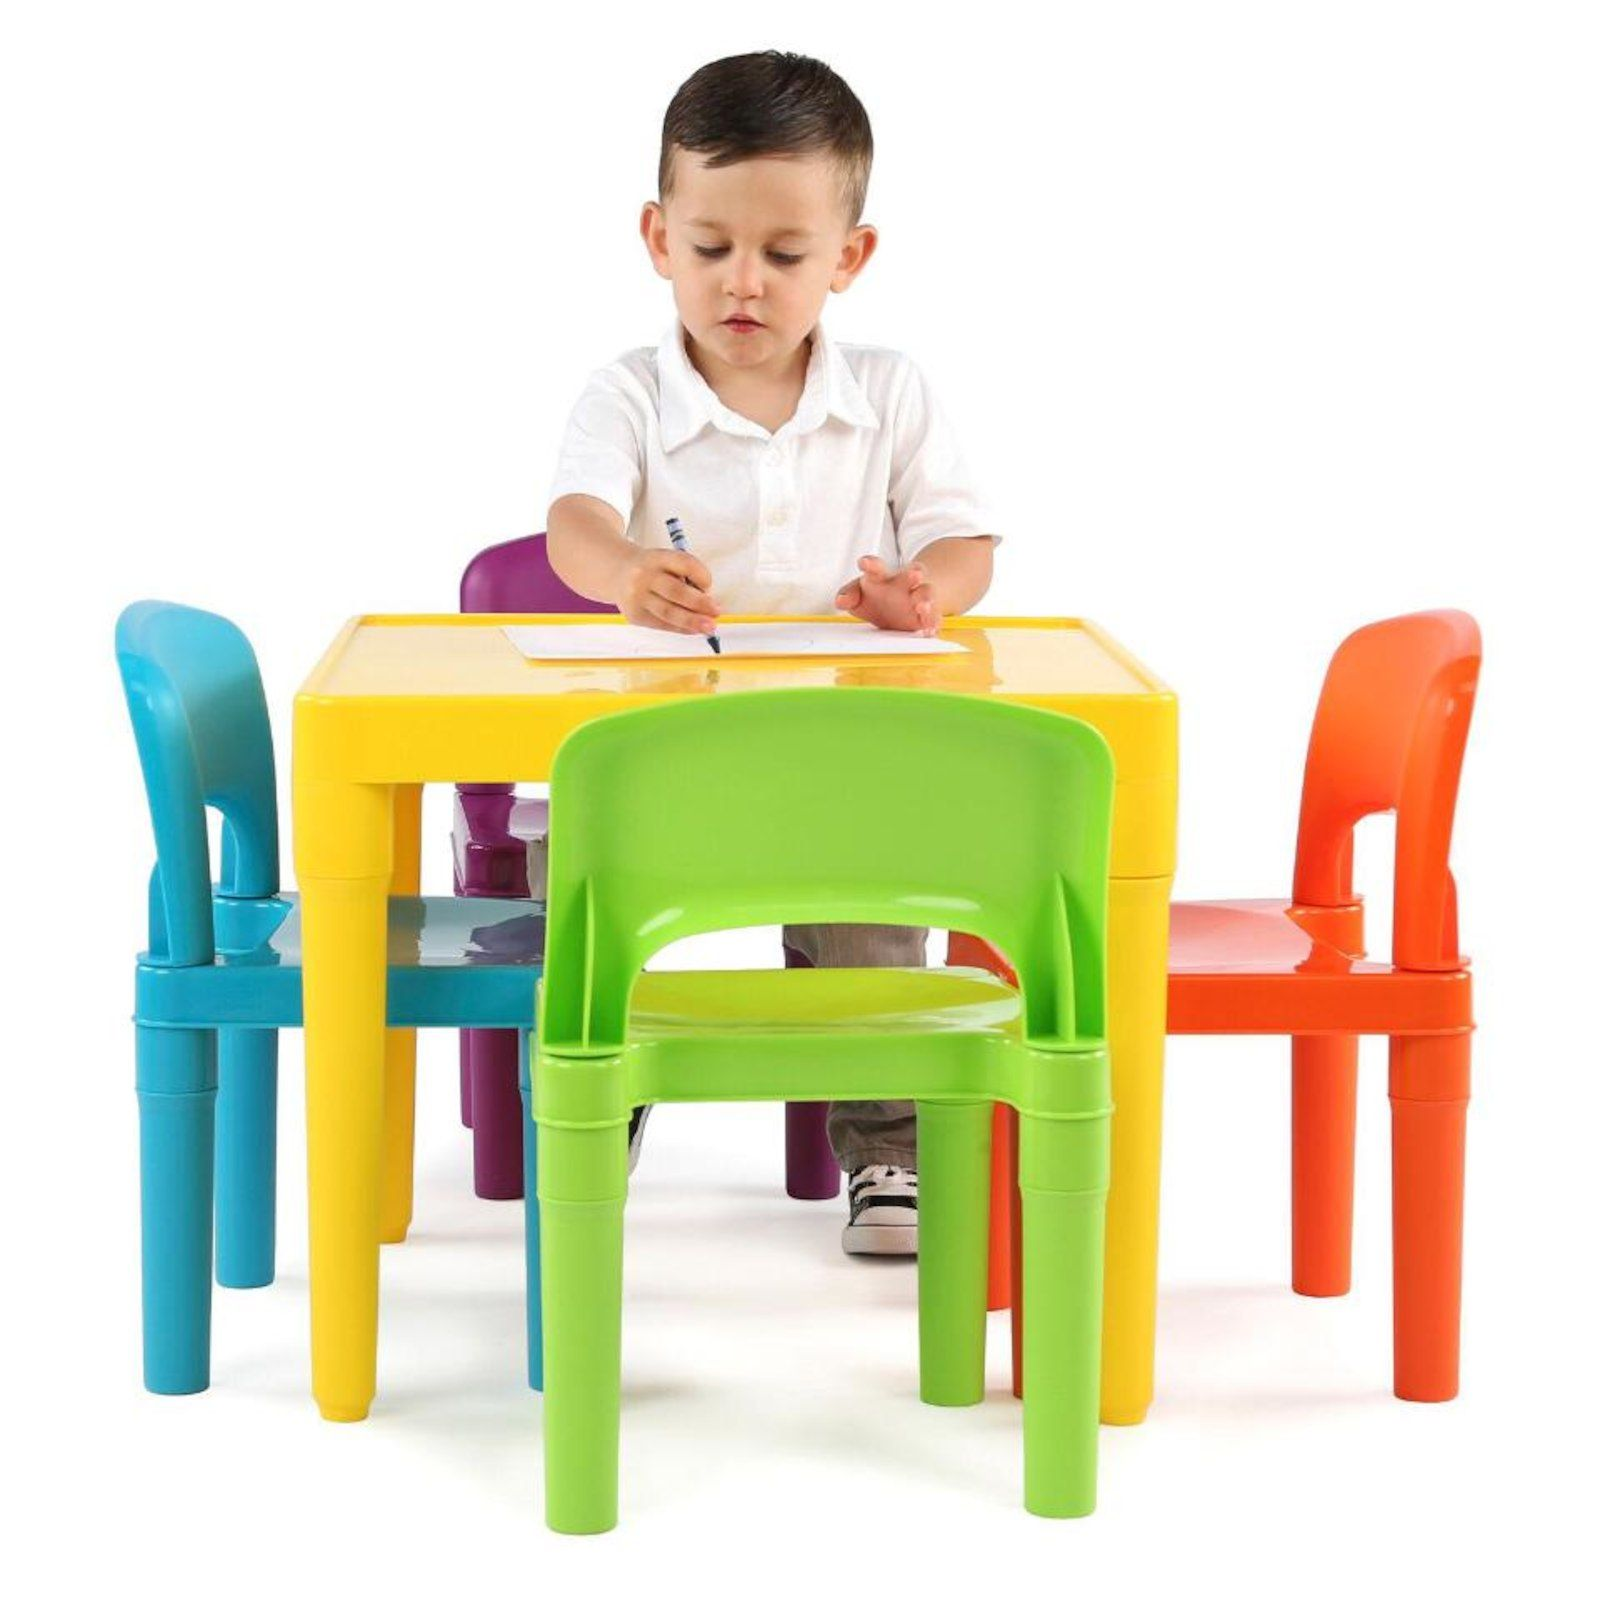 Tot Tutors Plastic Table And 4 Chairs Set Plastic Tables Chair Set Toddler Chair